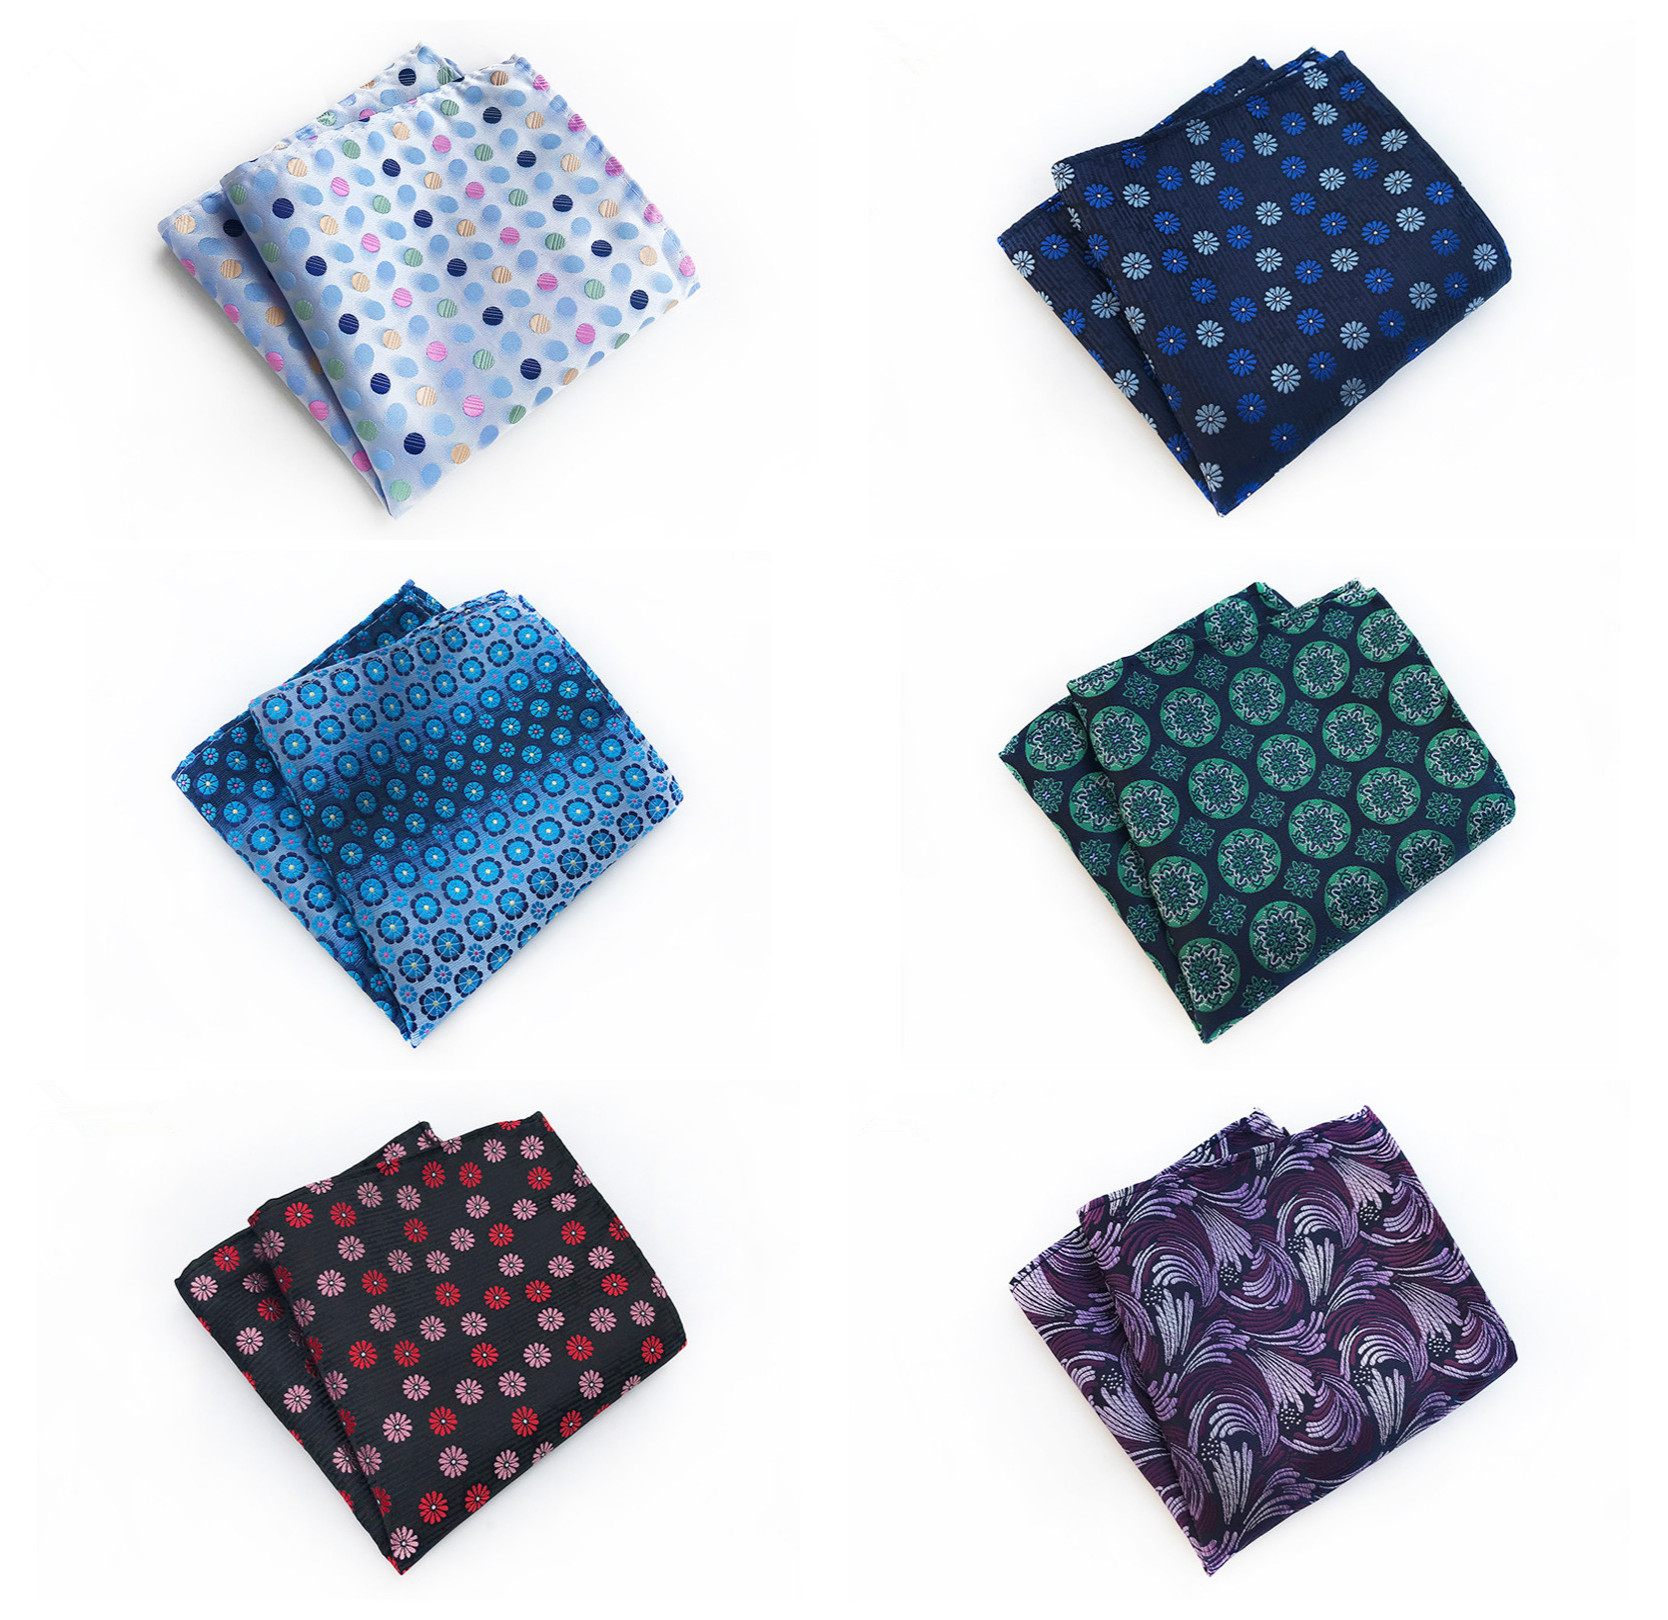 Men's Business Party Dresses Decorative Pocket Towels 2020 Fashion New Polyester Material Fashion Floral Set Pocket Towel